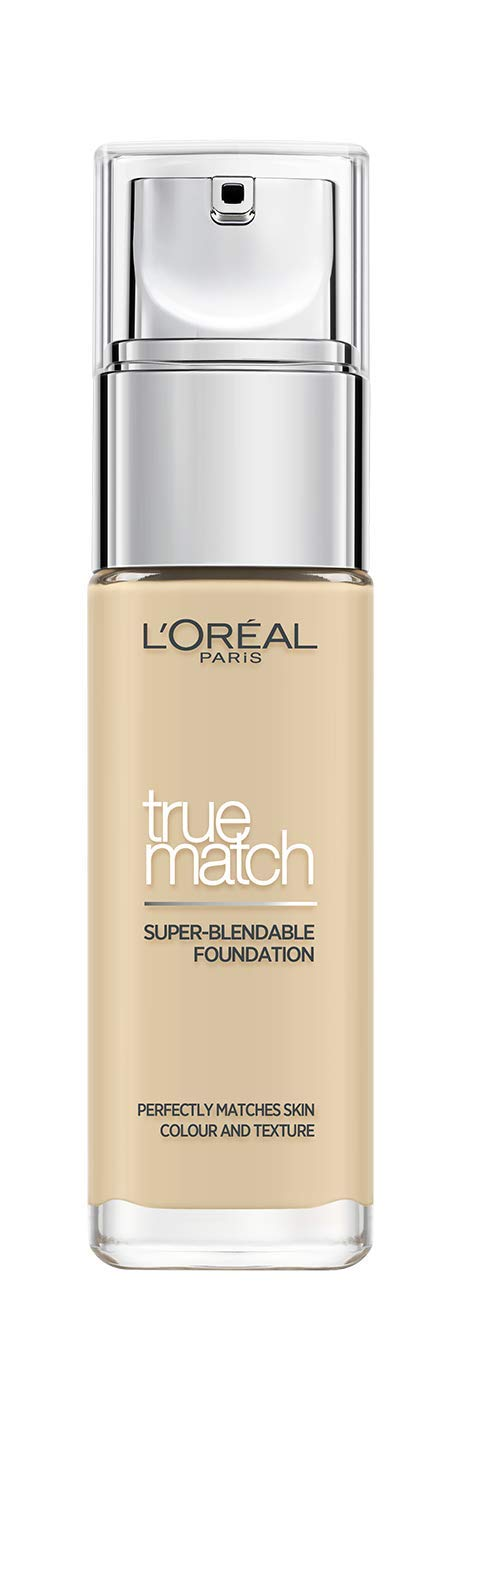 L'Oreal Paris True Match Liquid Foundation, Skincare Infused with Hyaluronic Acid, SPF 17, Available in 40 Shades, 1.W Golden Ivory, 30 ml